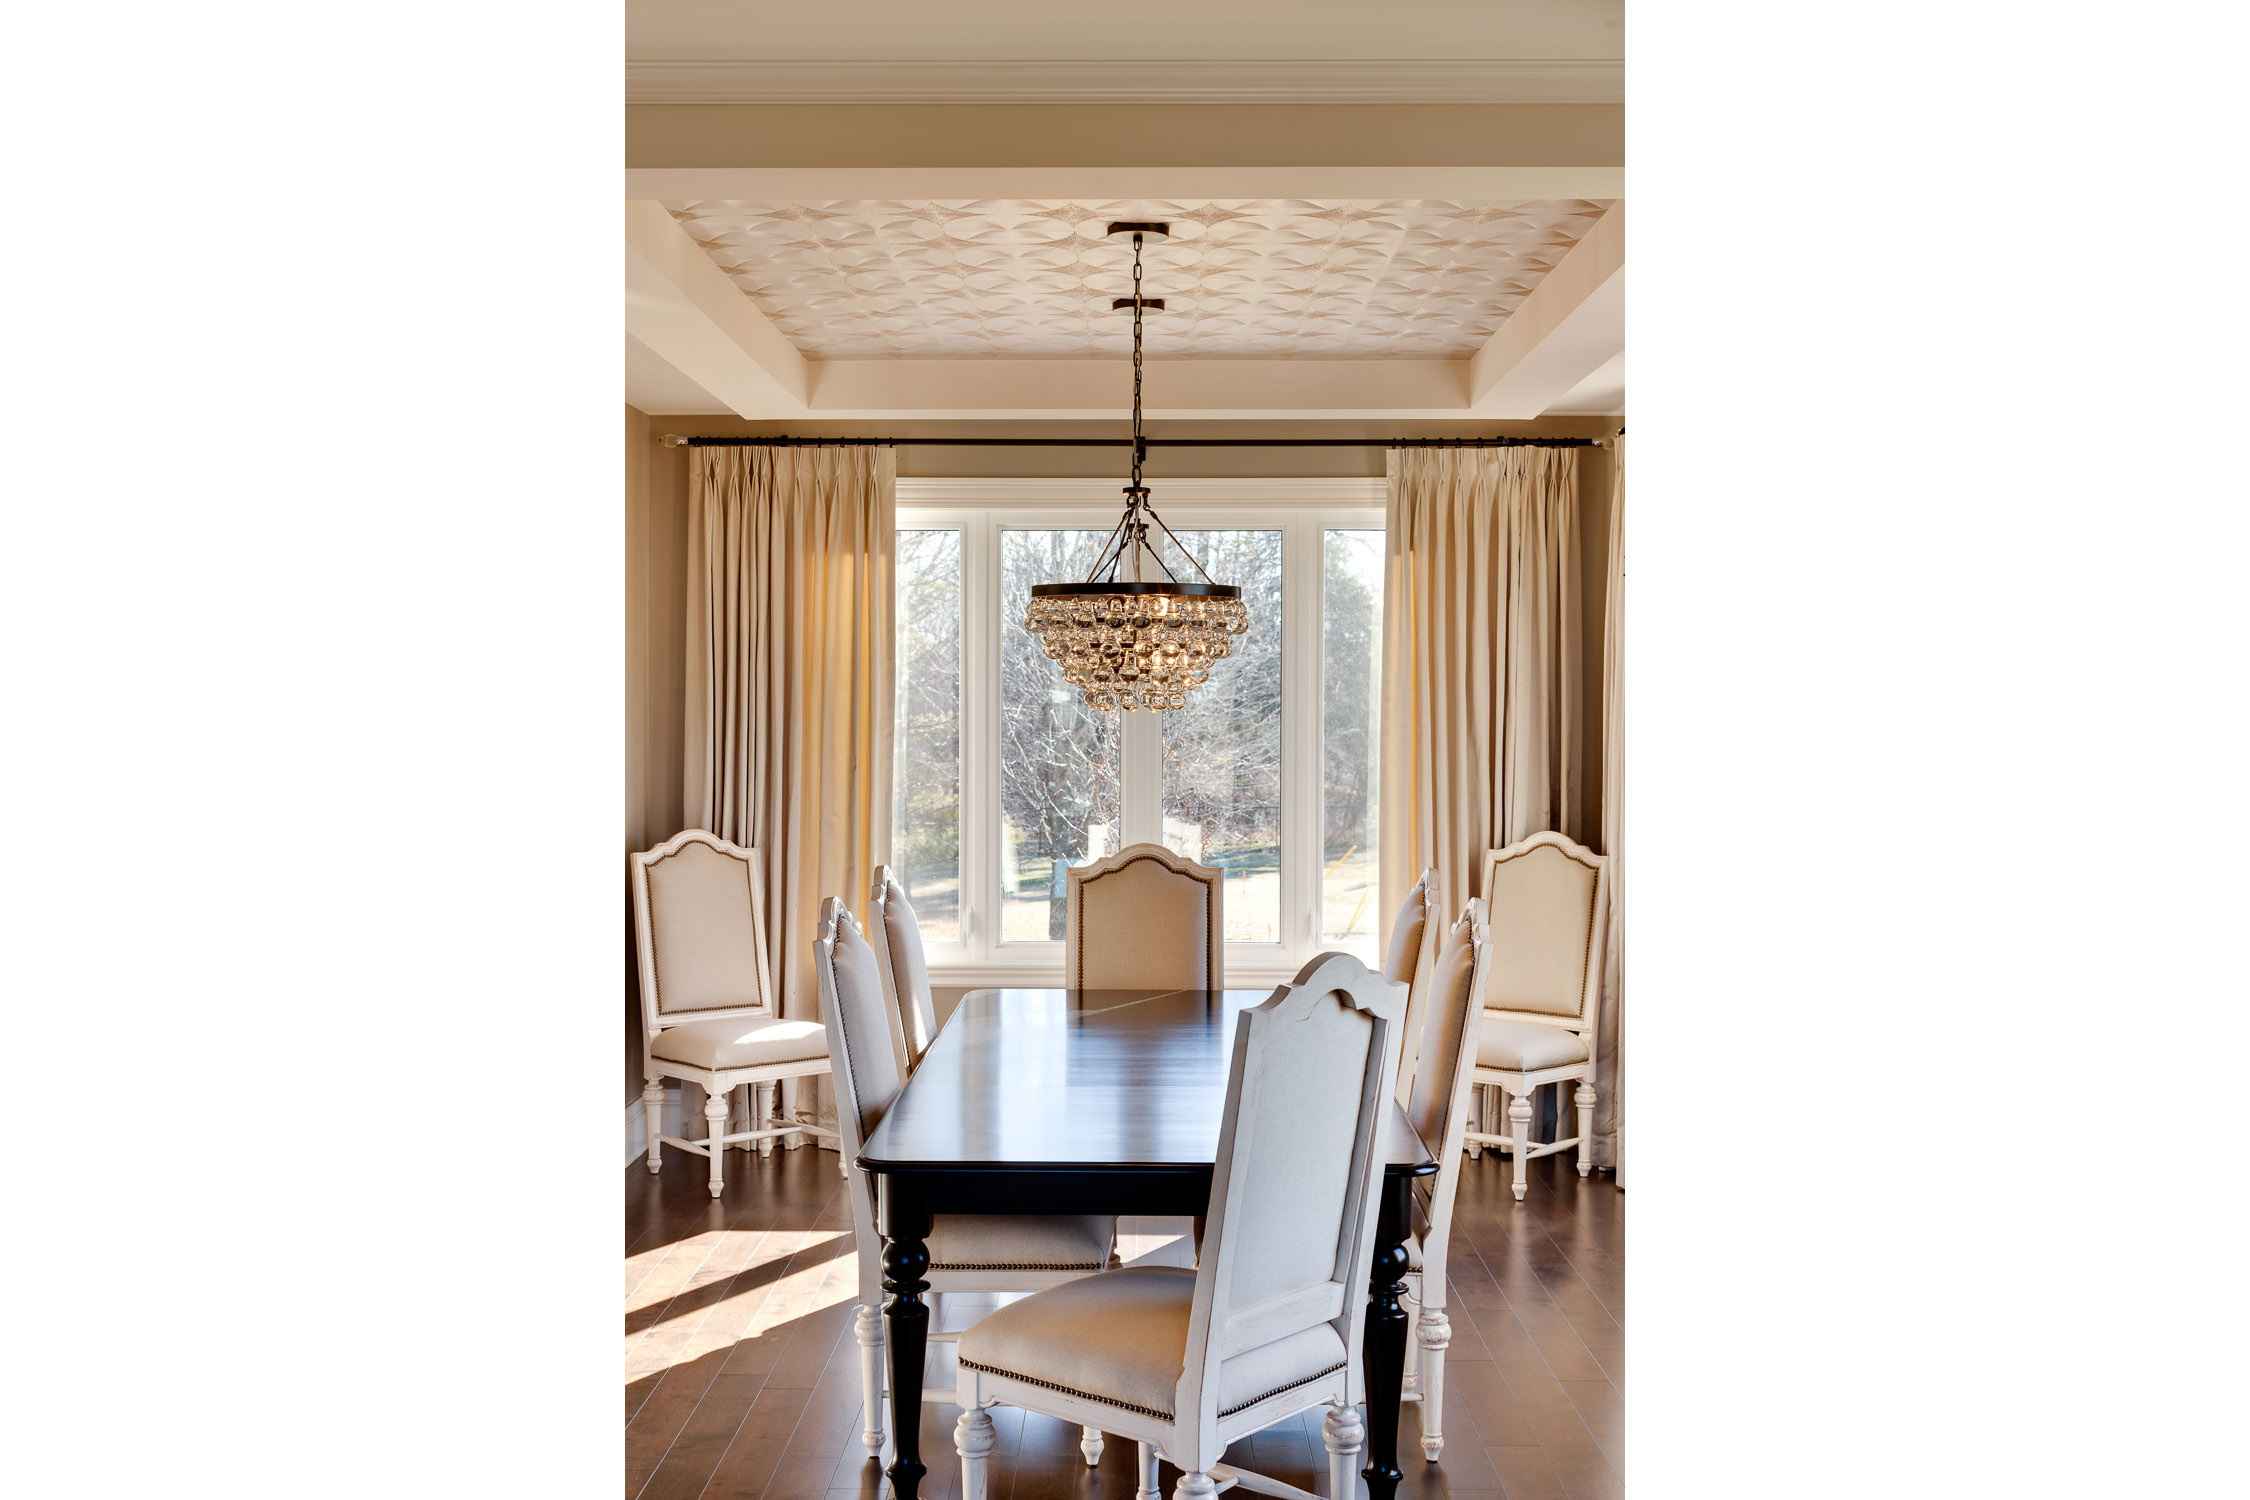 Photograph of a dining table